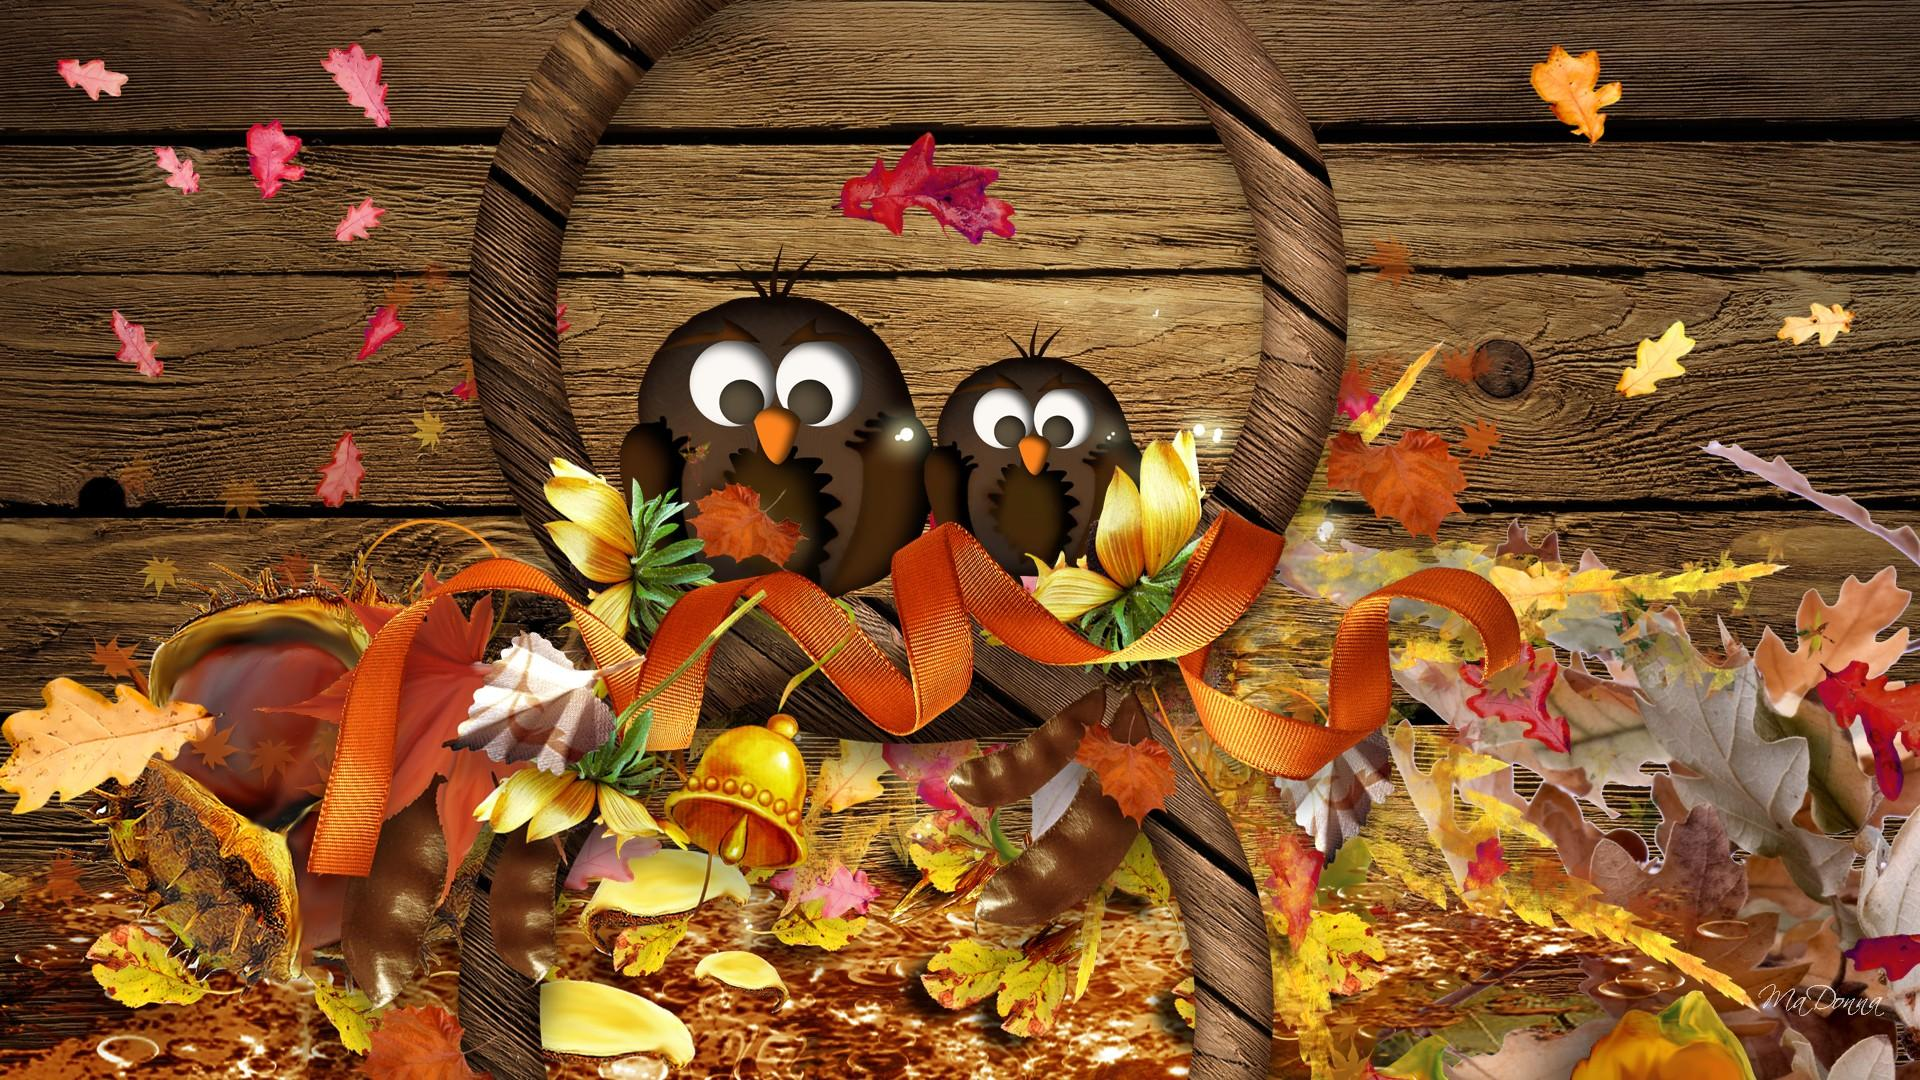 Thanksgiving Background Wallpapers WIN10 THEMES 1920x1080